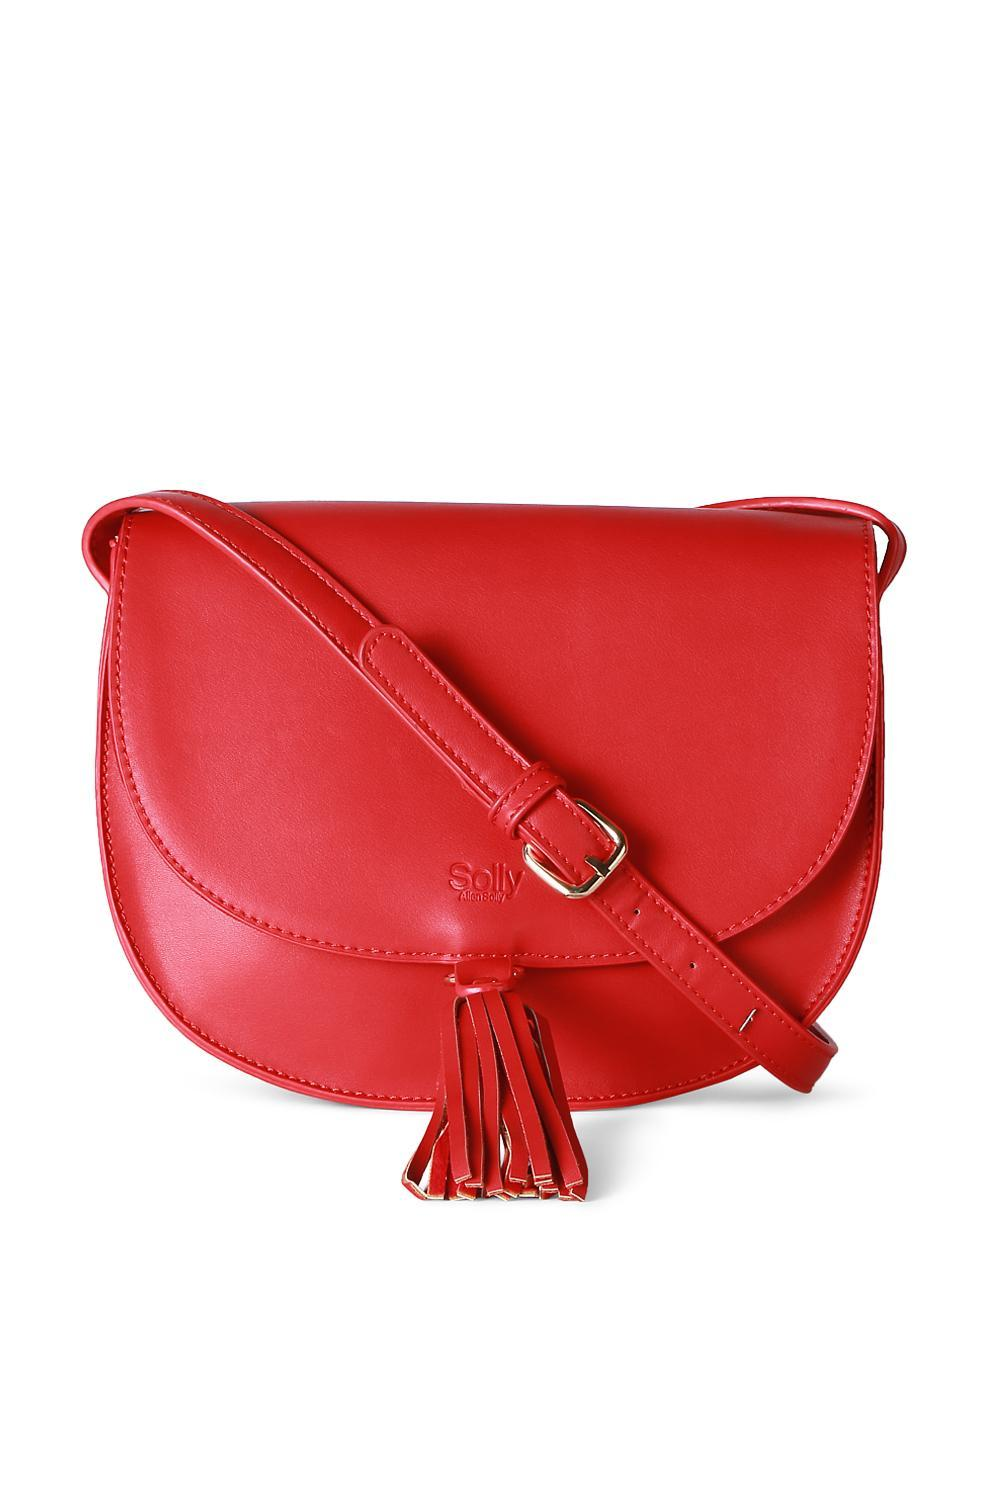 2ffc1348e Solly Fashion Accessories, Allen Solly Red Sling Bag for Women at  Allensolly.com